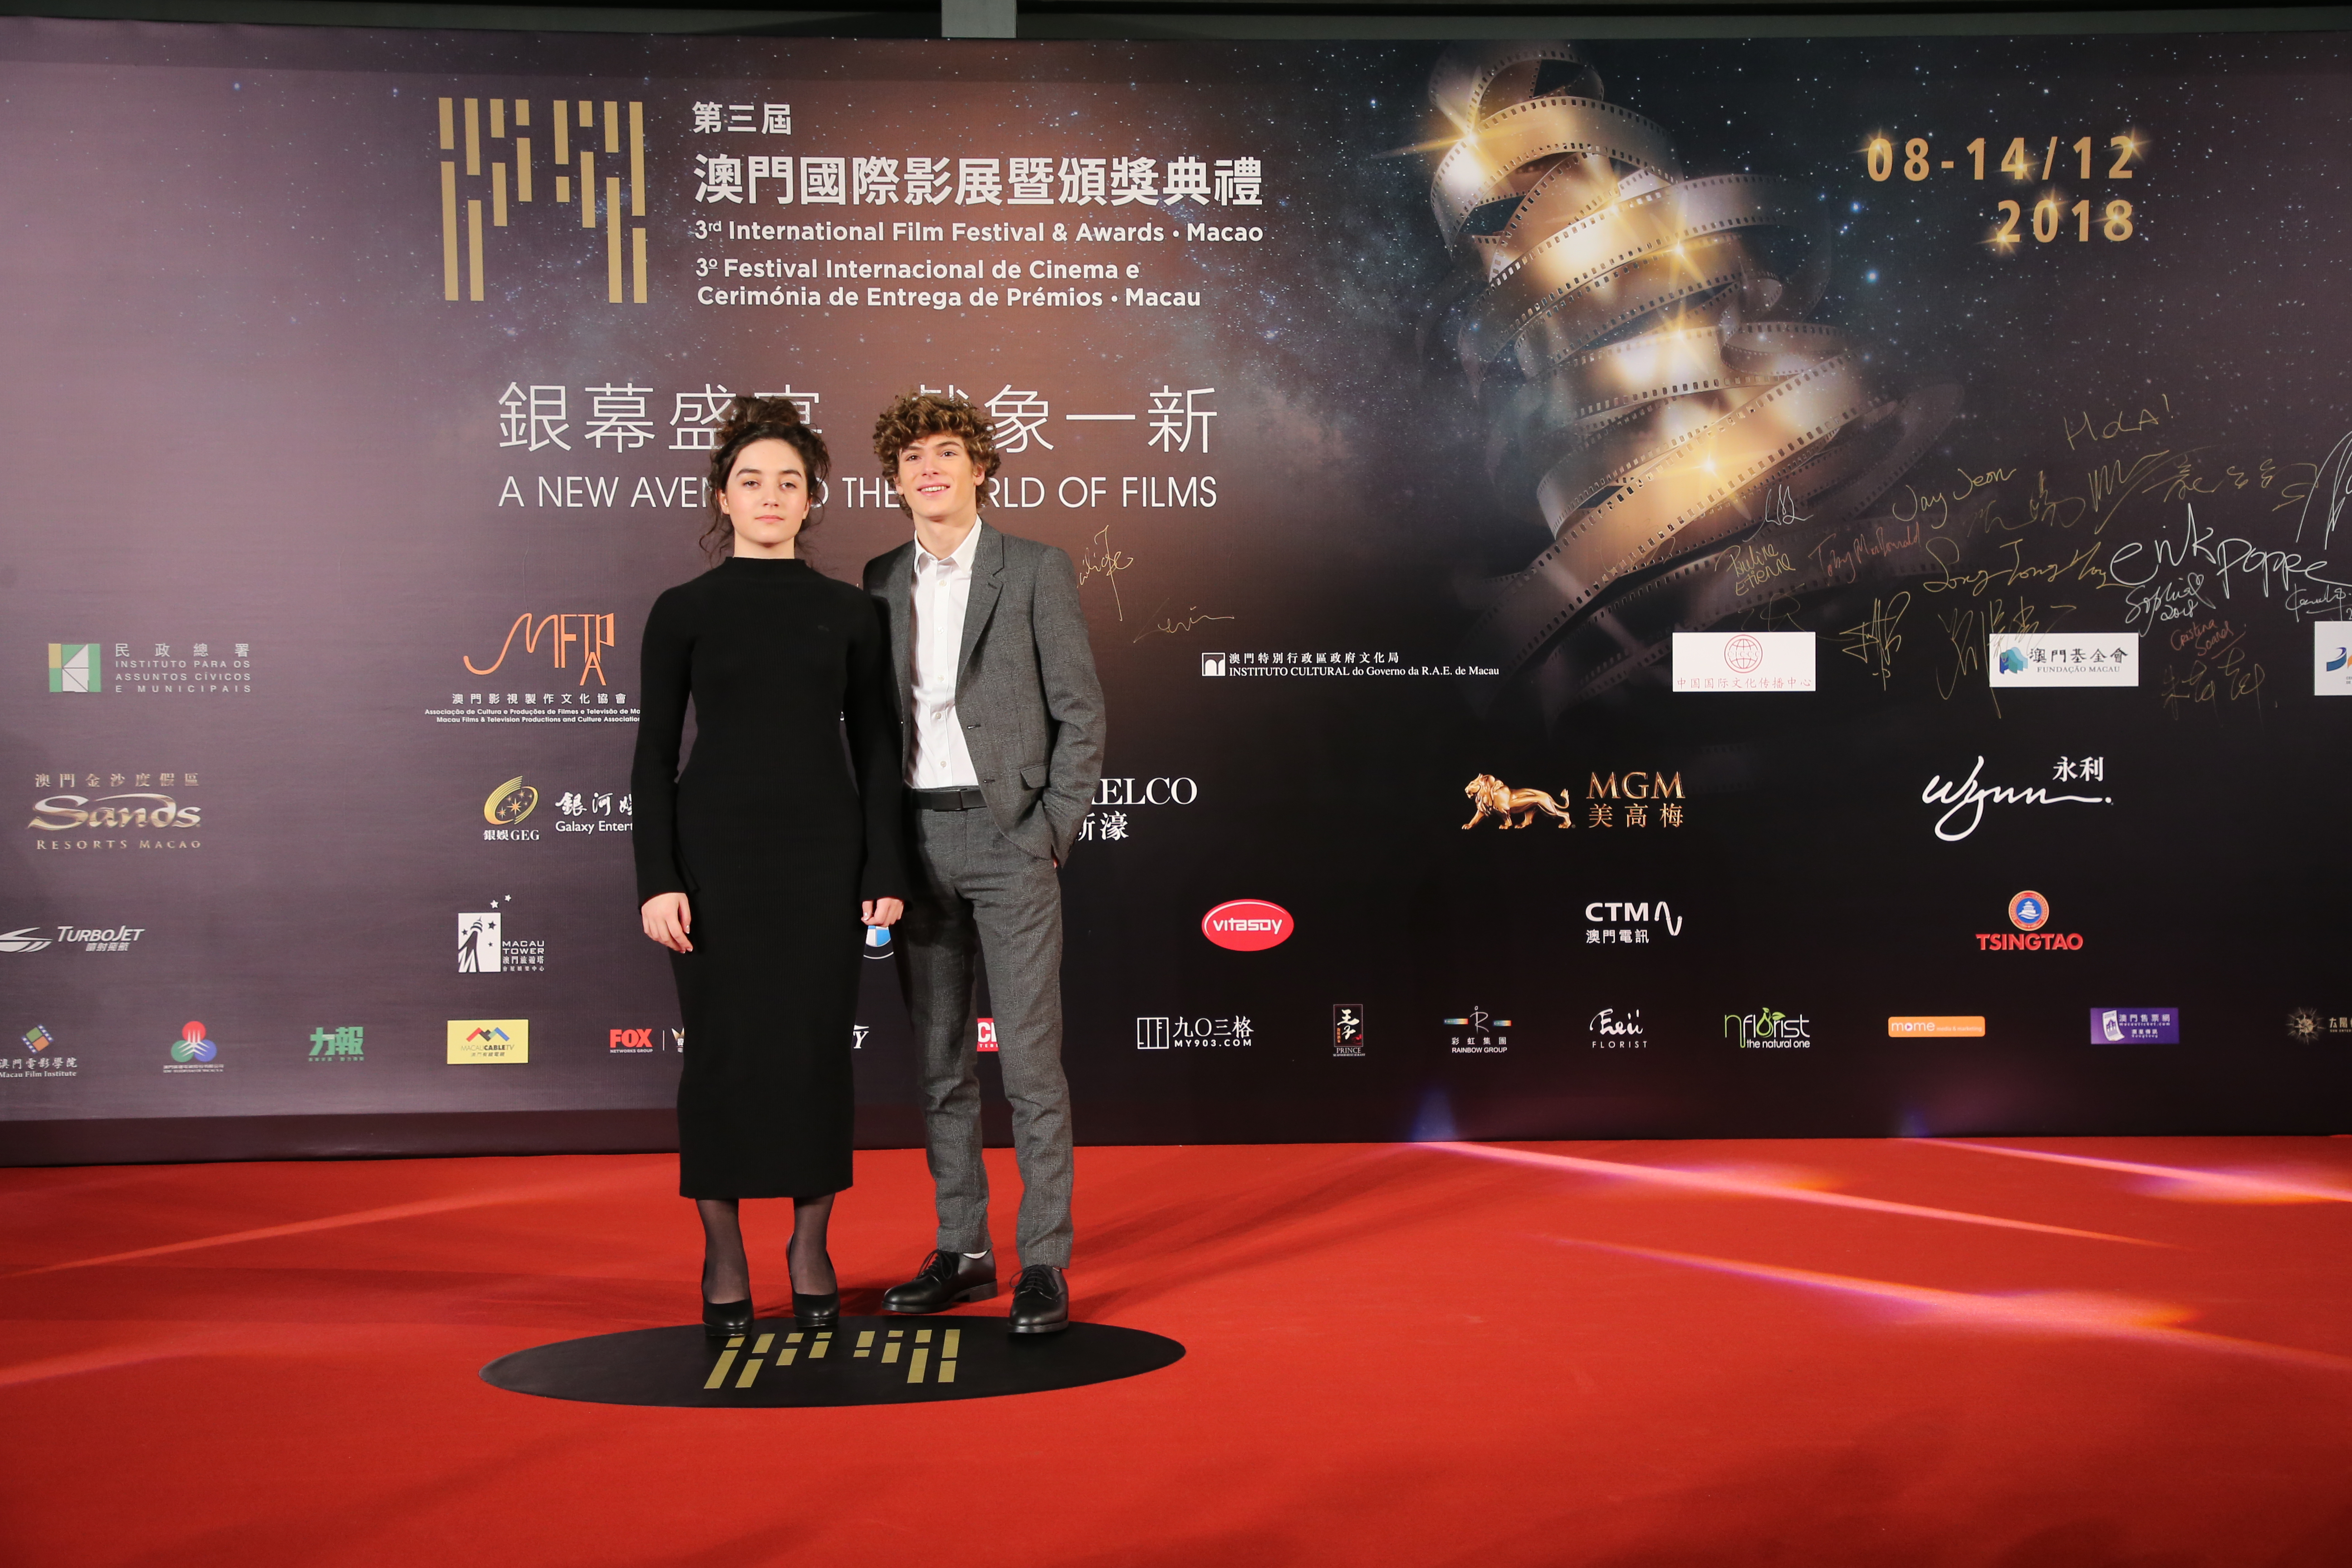 Wonderful red carpet photos of Matteo Perez and Luàna Bajrami attending the 3rd International Film Festival and Awards in Macao for SCHOOL'S OUT!